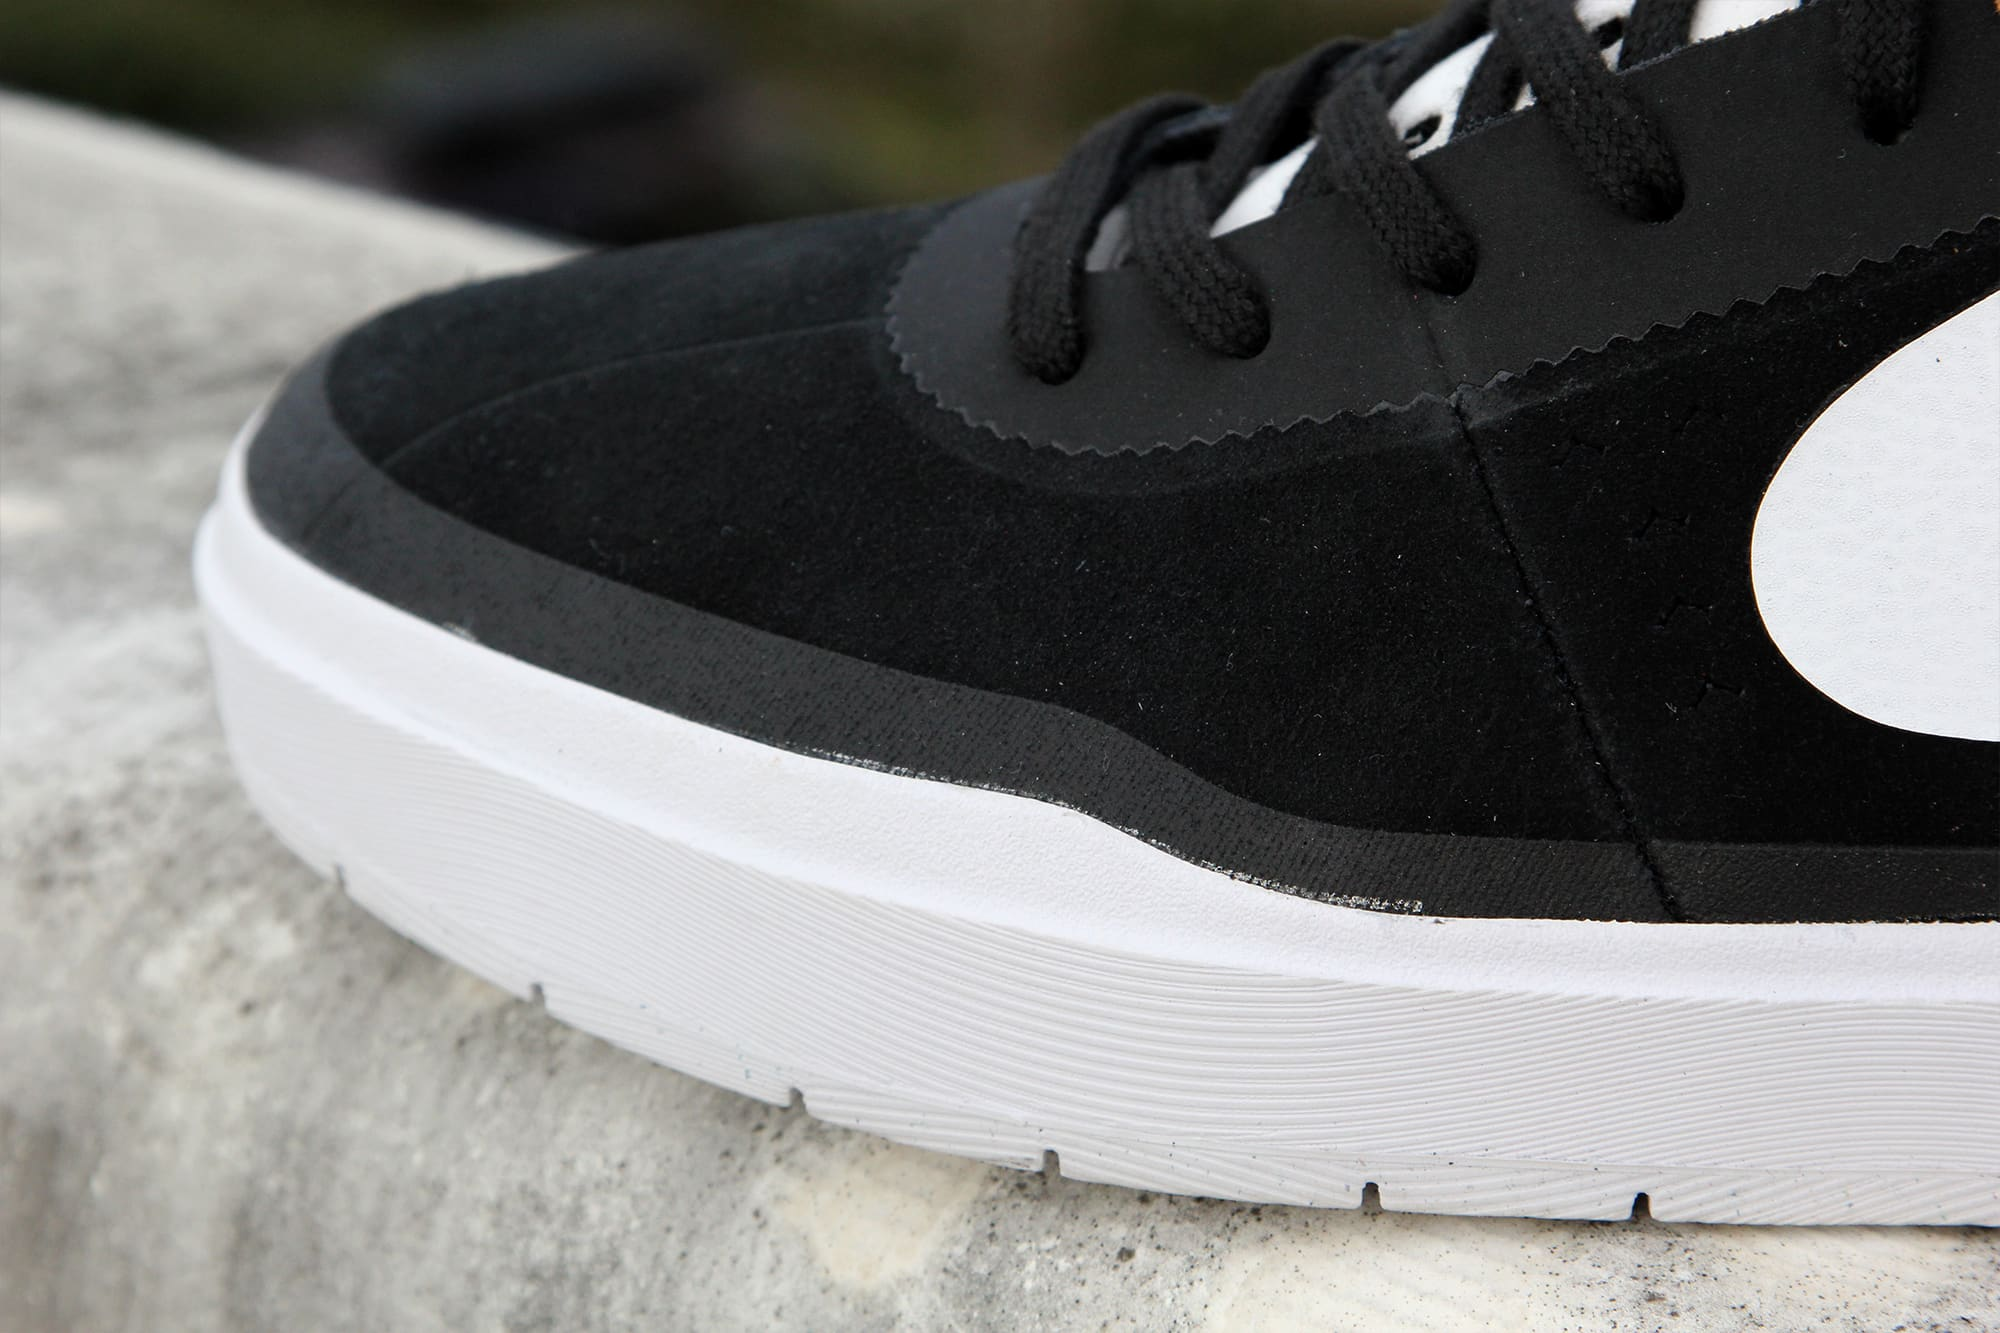 Vans Slip Skate Shoes